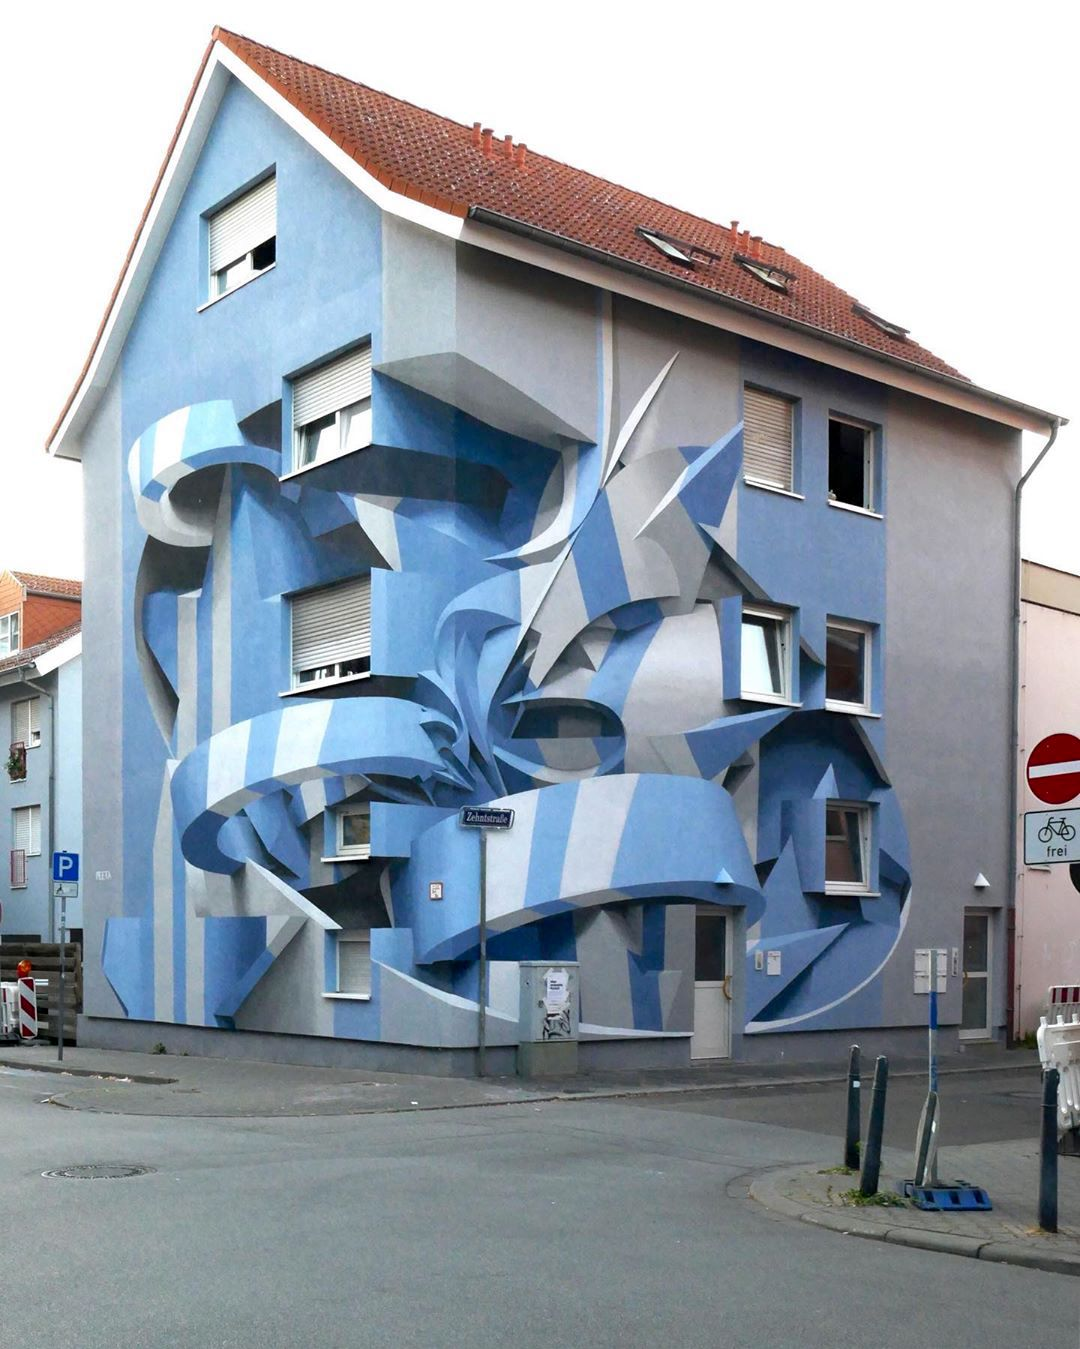 Giant Anamorphic 3D Architectural Murals That Appear to Jump Outward From the Walls of Buildings